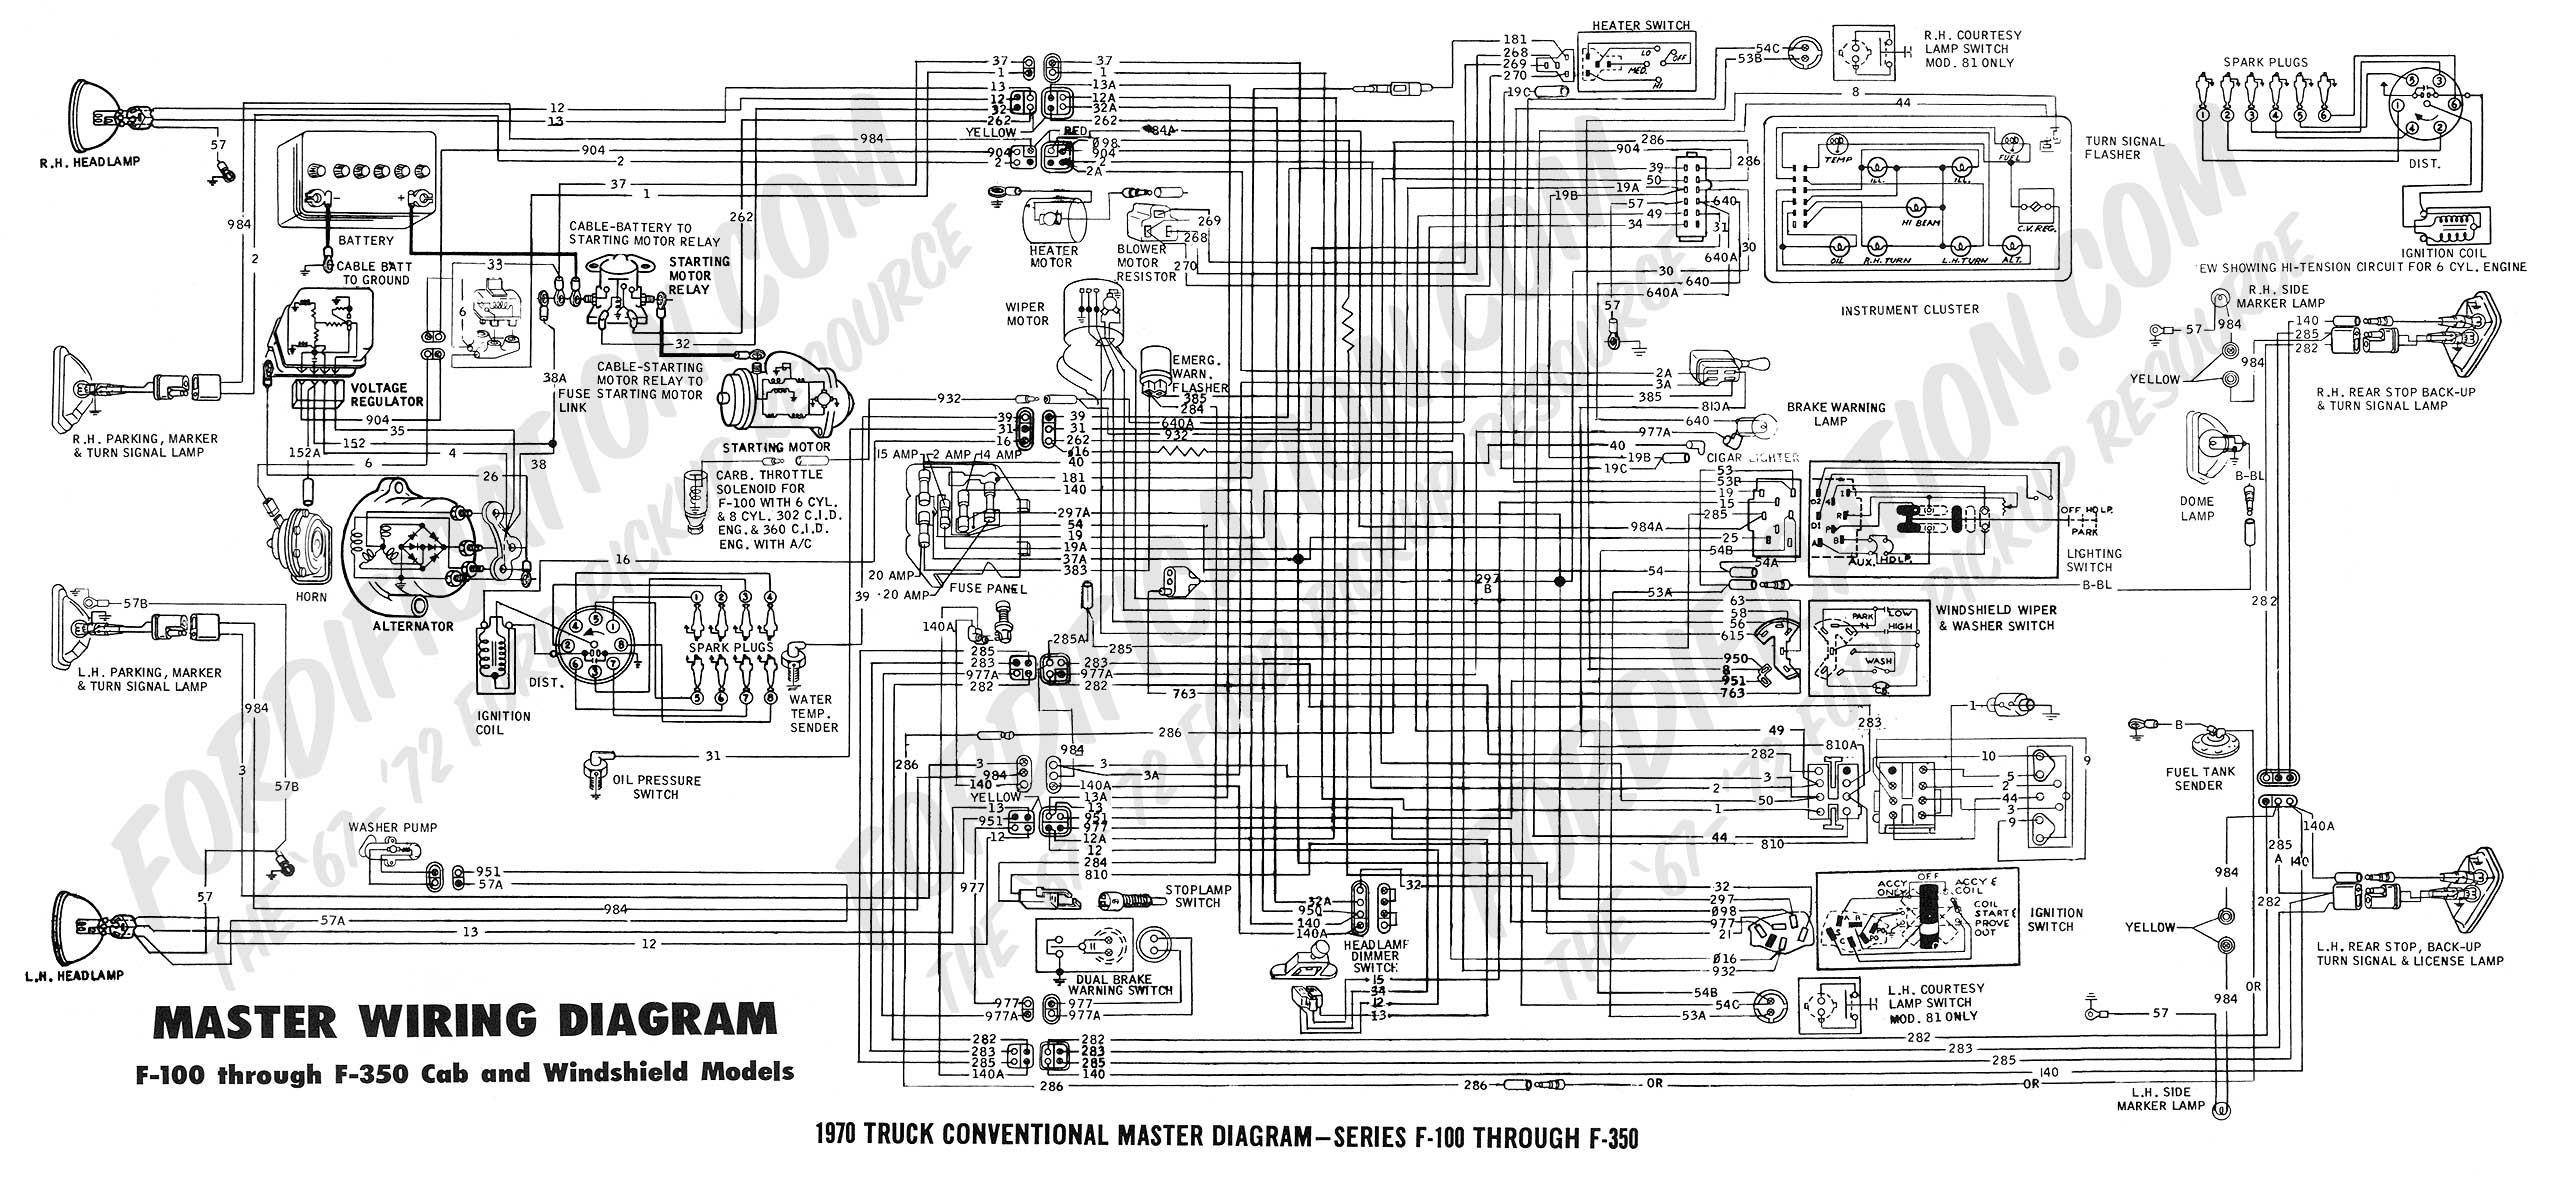 1987 gmc air conditioning wiring diagram truck wiring diagrams truck wiring diagrams online